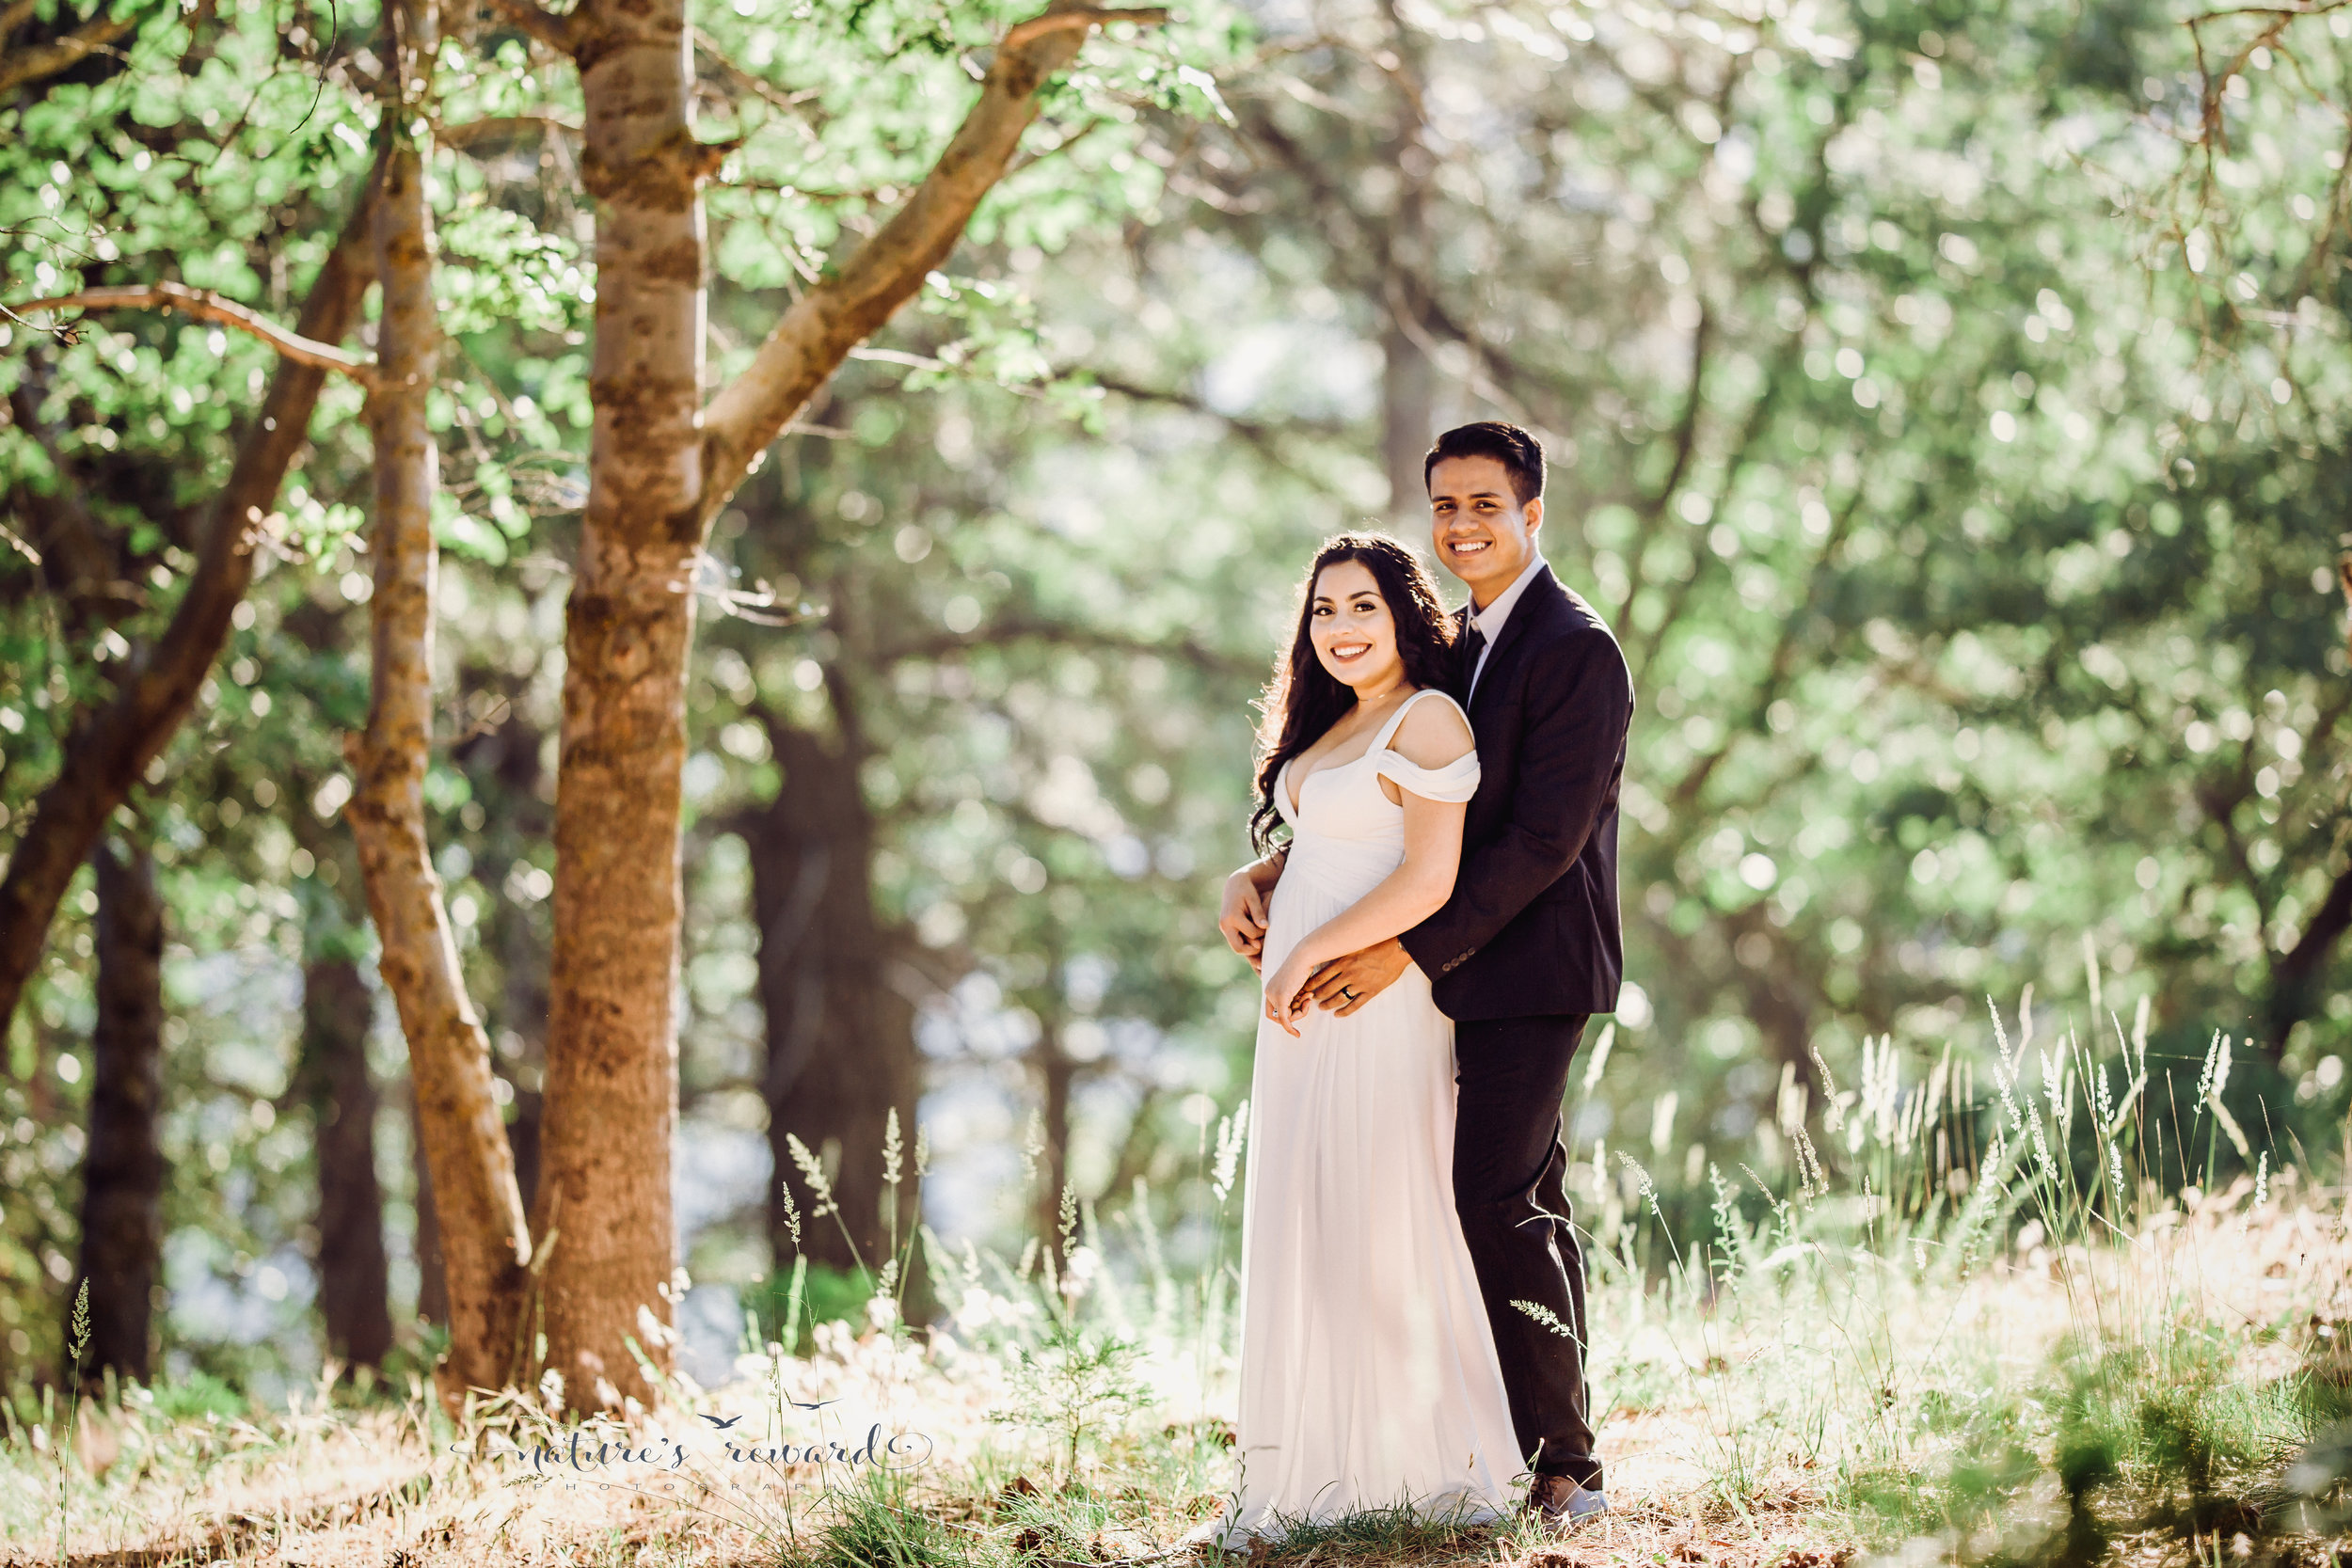 Here they are!  Gorgeous bride and groom portrait by Nature's Reward Photography